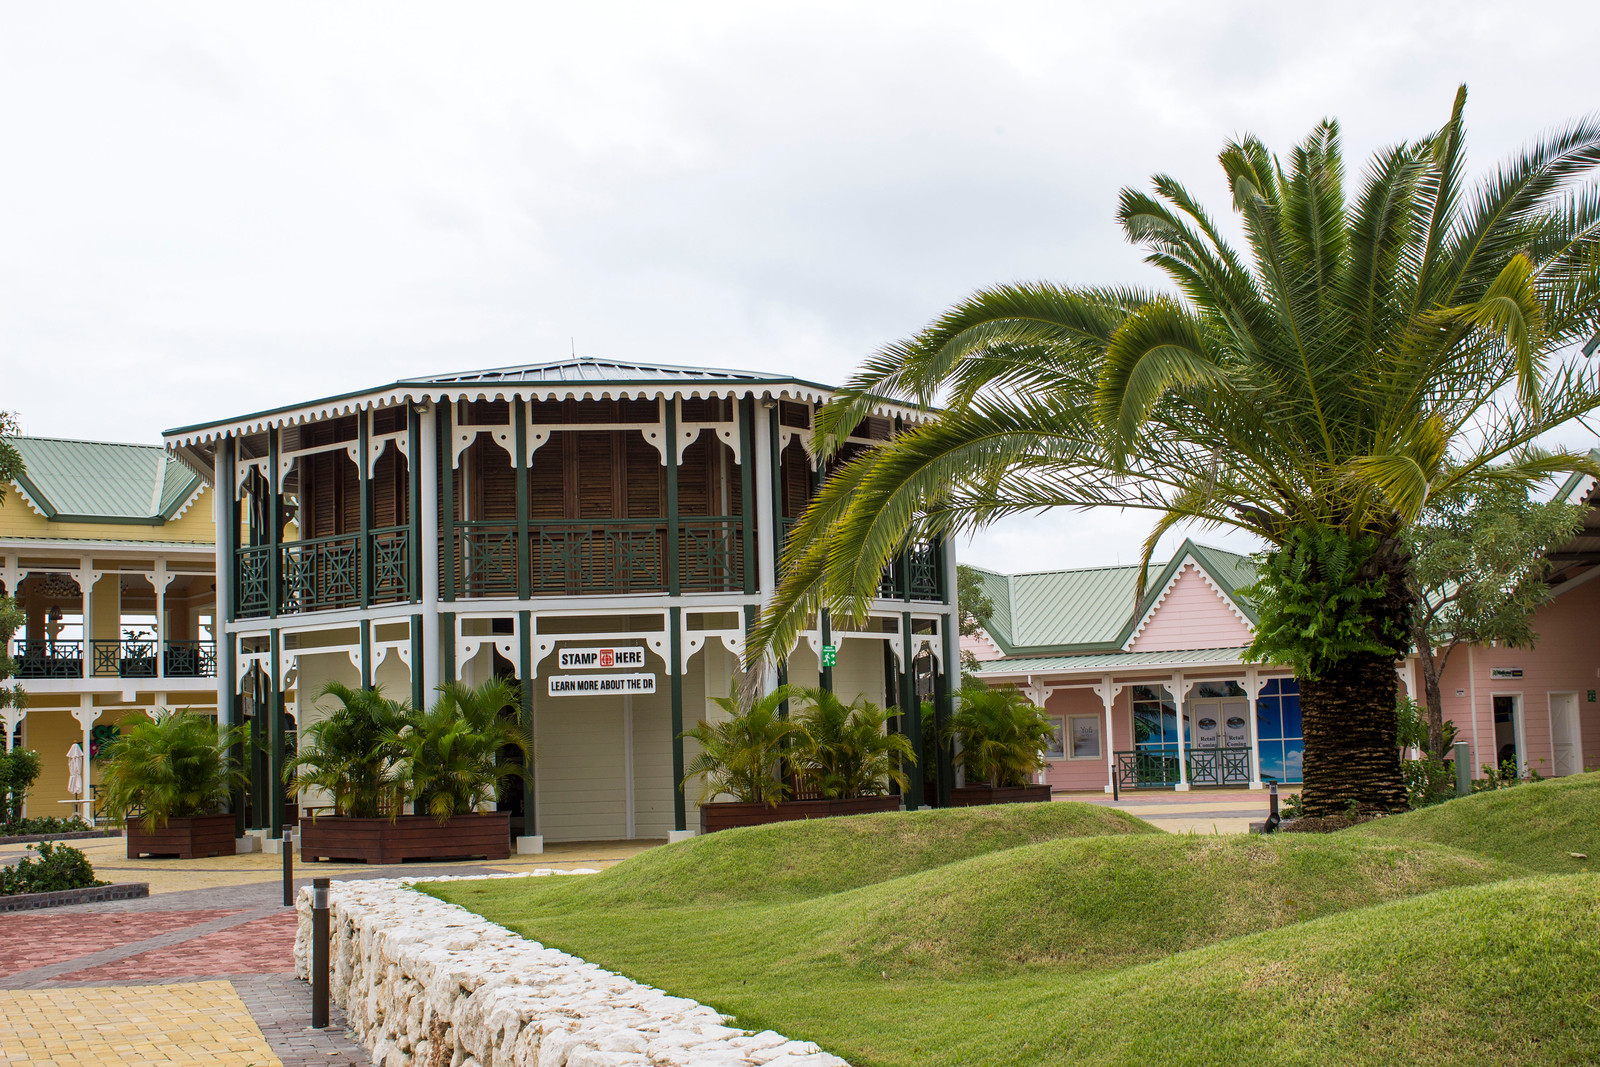 Amber Cove Cruise Port Guide - Dominican Republic - Gazebo to get passport stamped